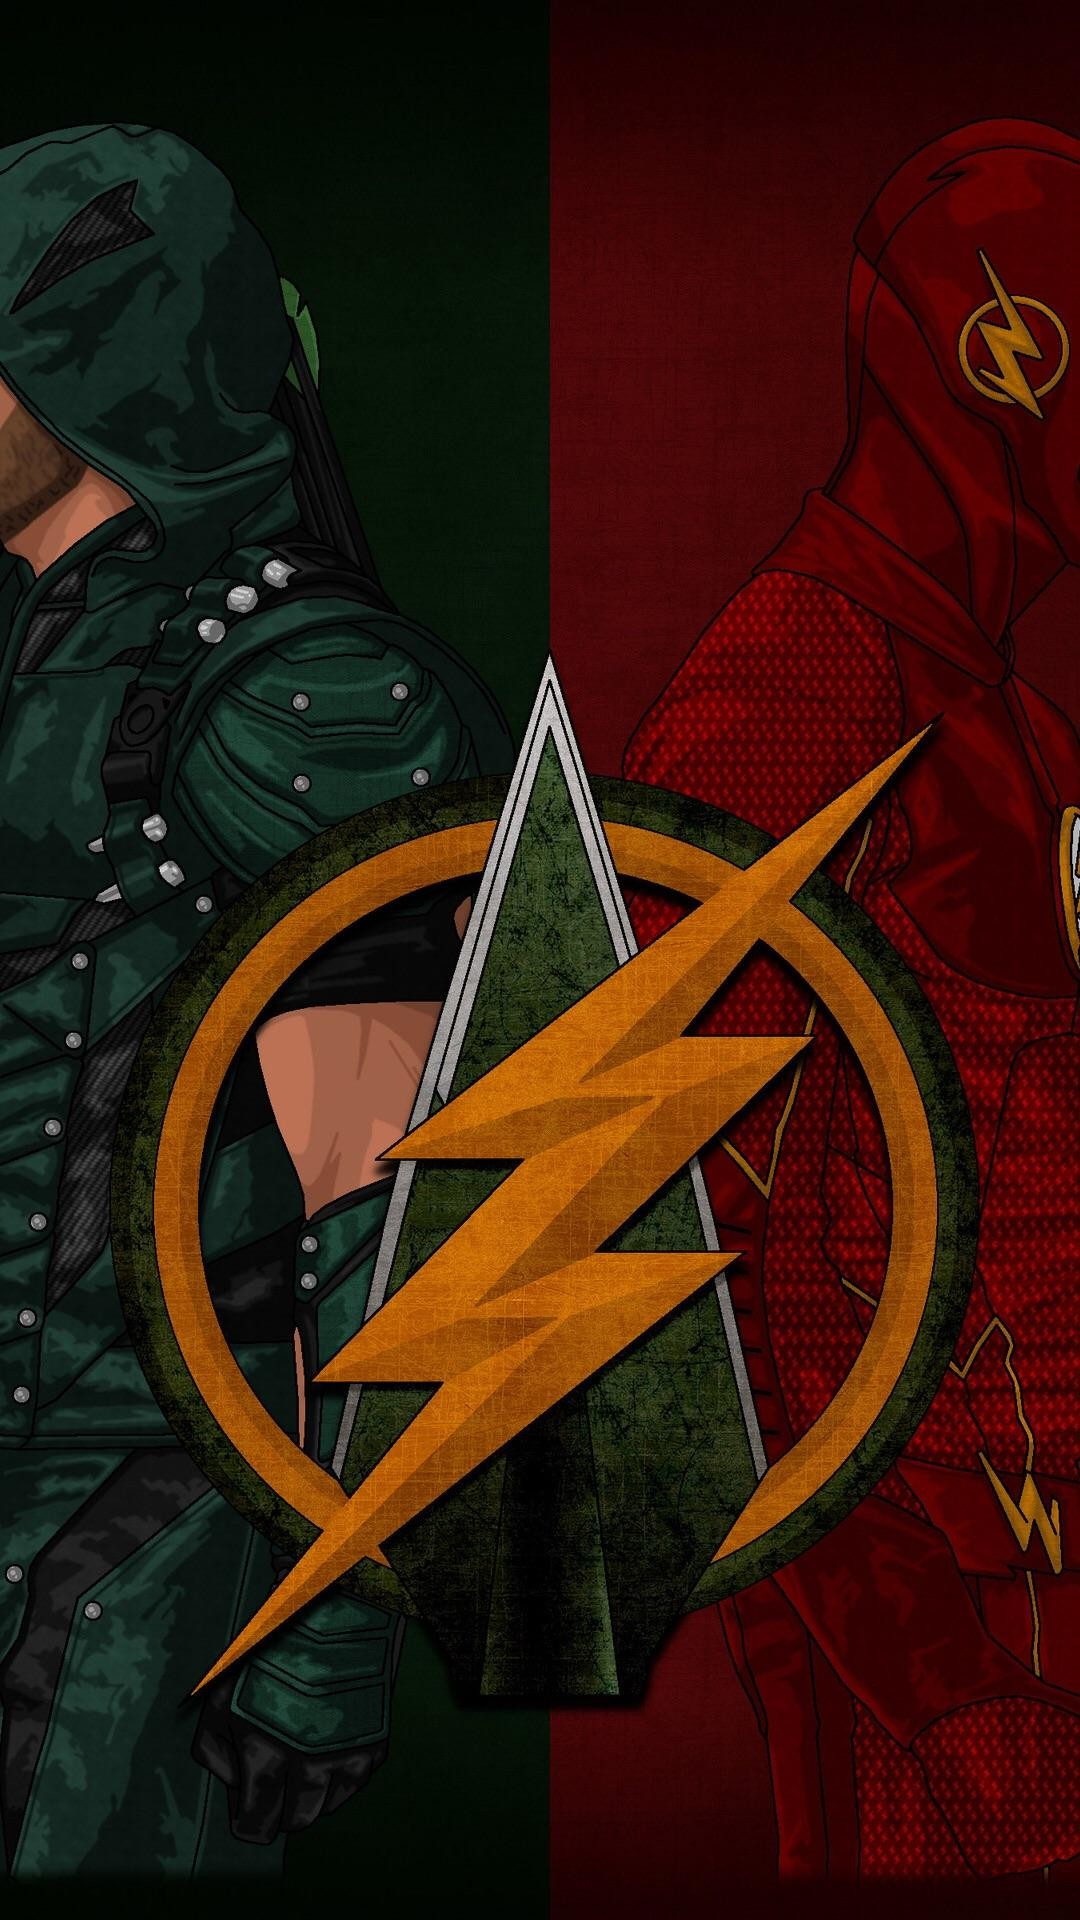 1080x1920 Off Topic[No Spoilers] A cool Flash/Arrow phone wallpaper I found ...